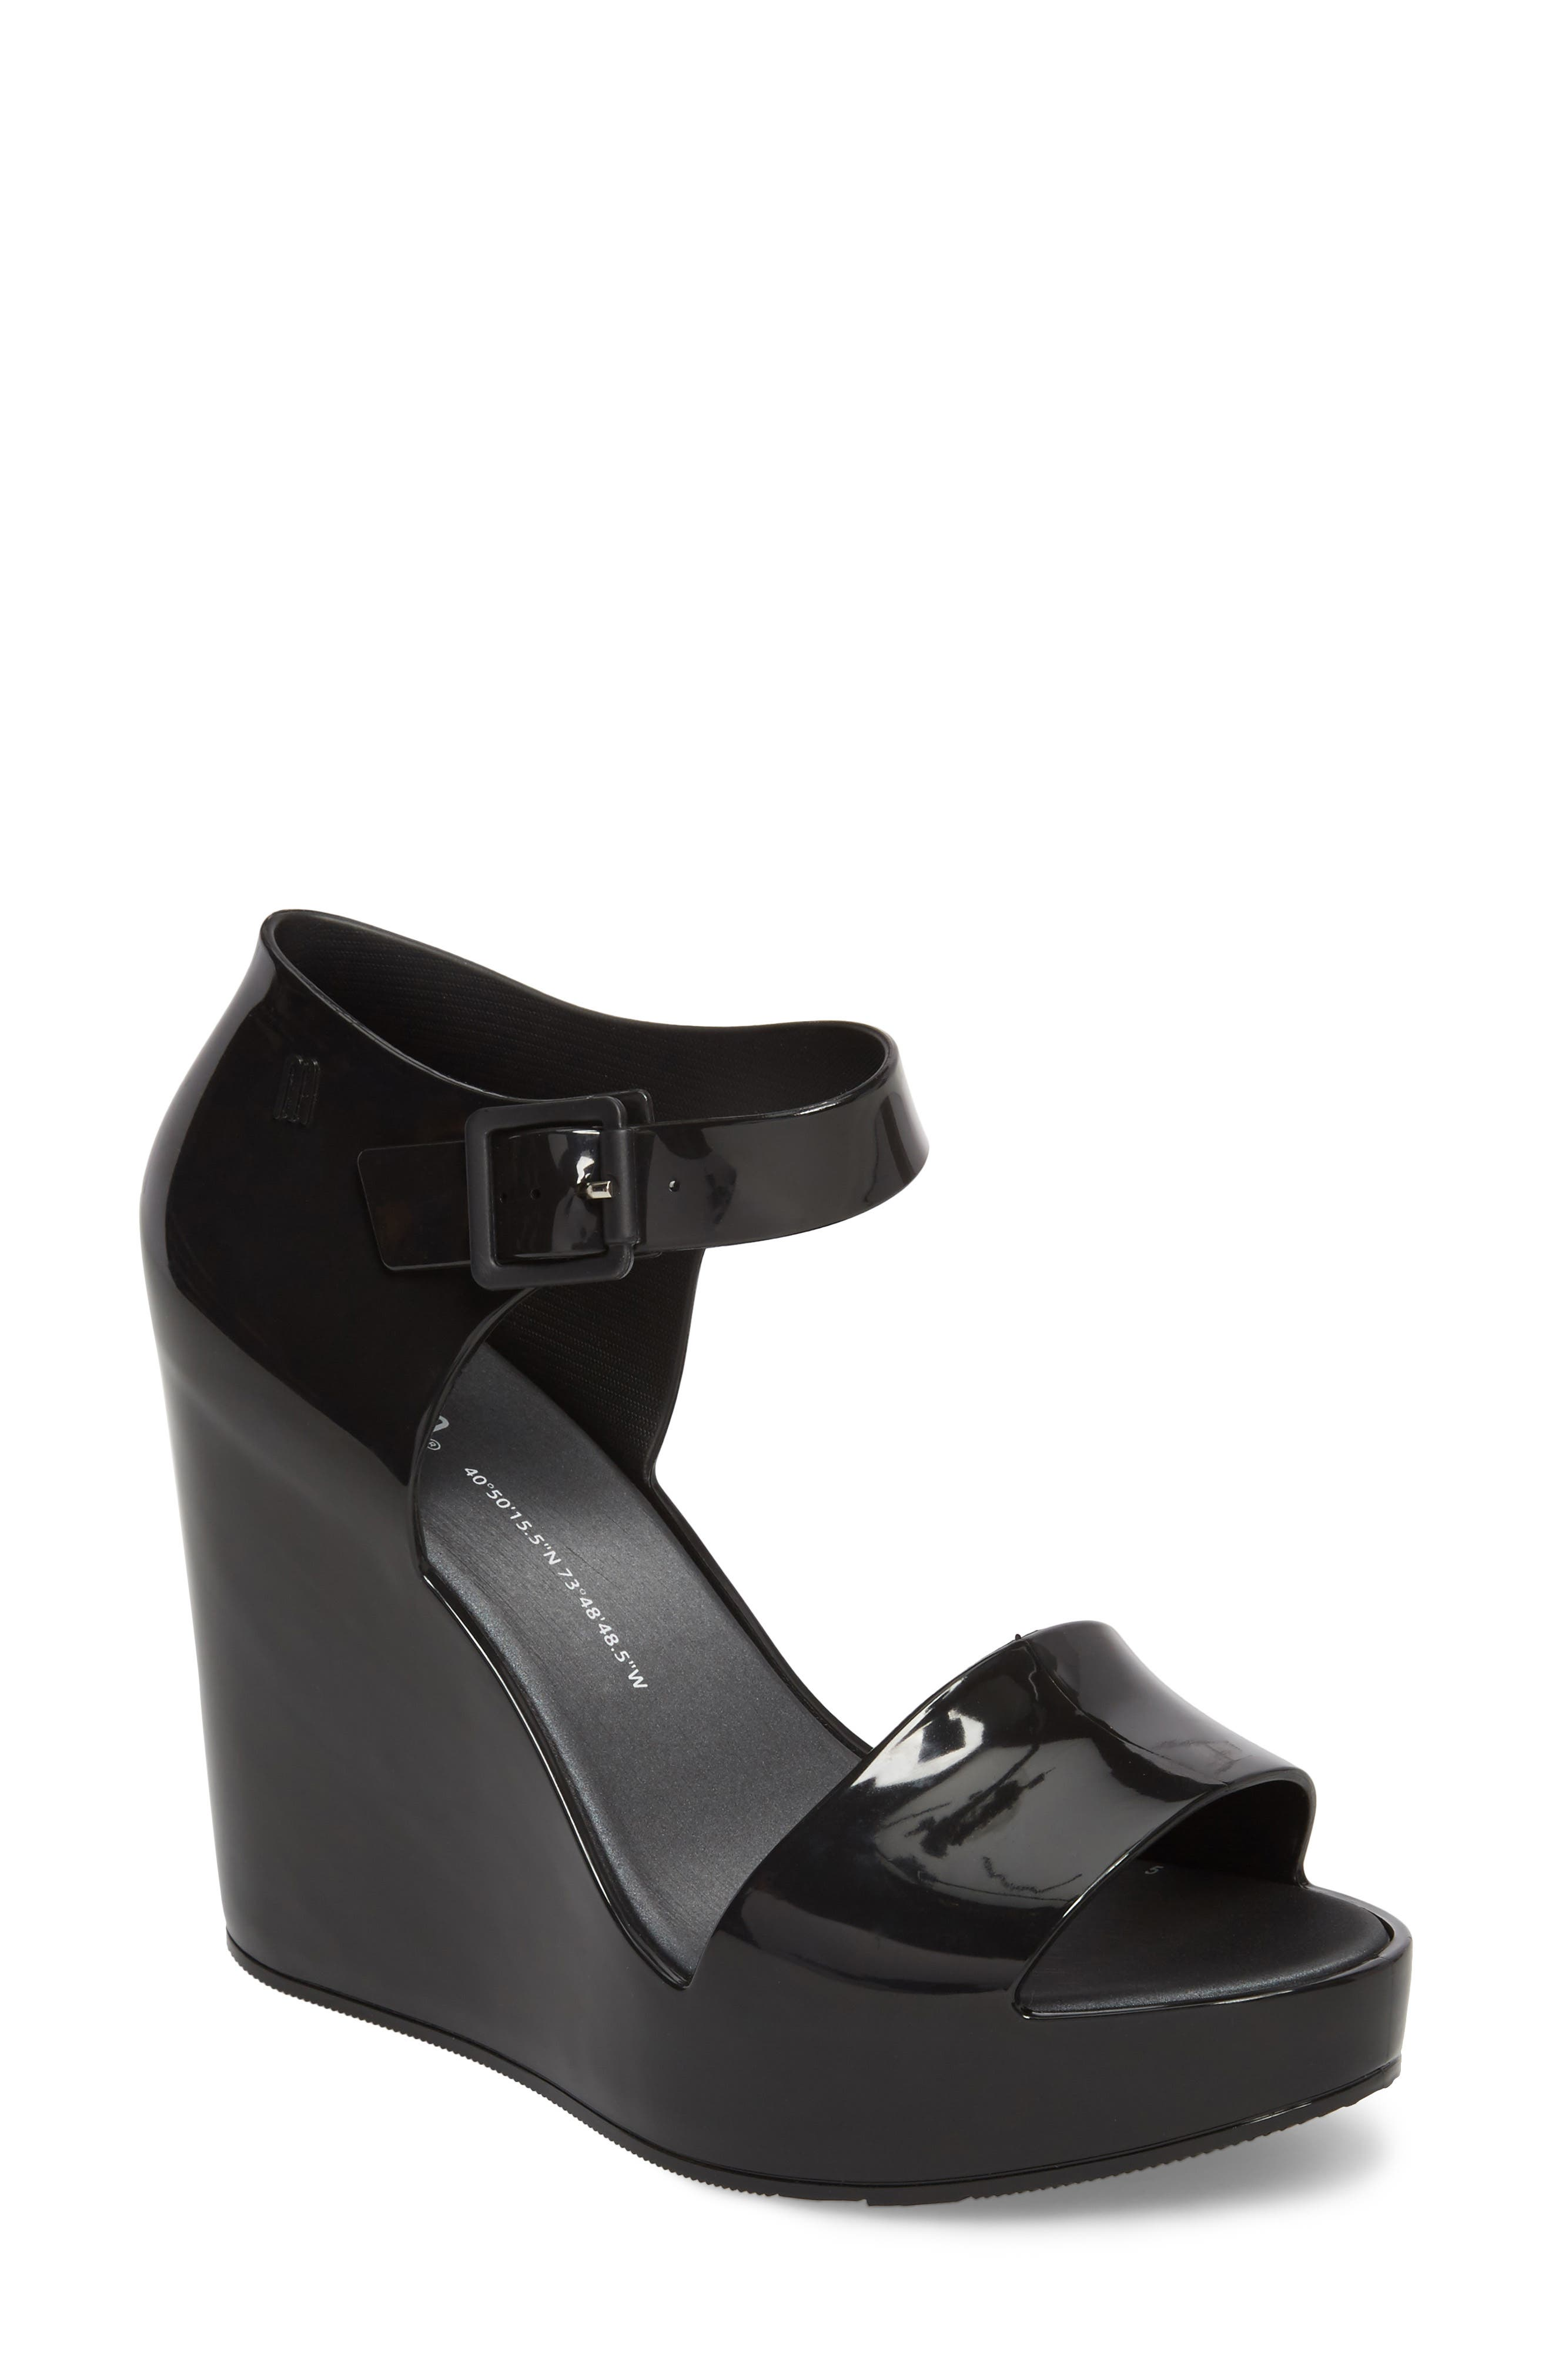 Mar Platform Wedge Sandal,                         Main,                         color, BLACK